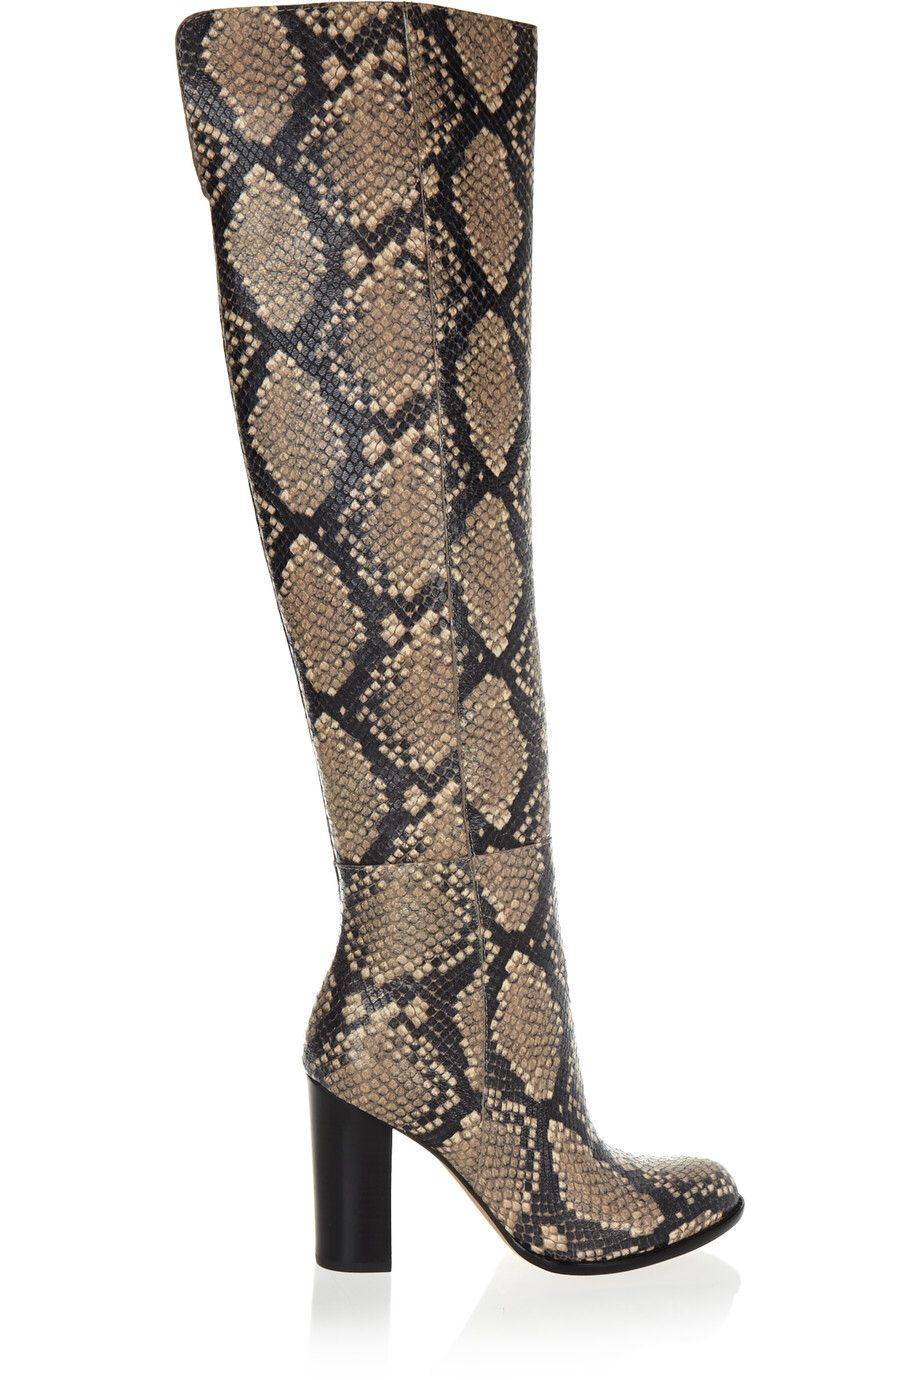 1e08e09944a SAM EDELMAN RYLAN SNAKE-EFFECT LEATHER OVER-THE-KNEE BOOTS  125 http